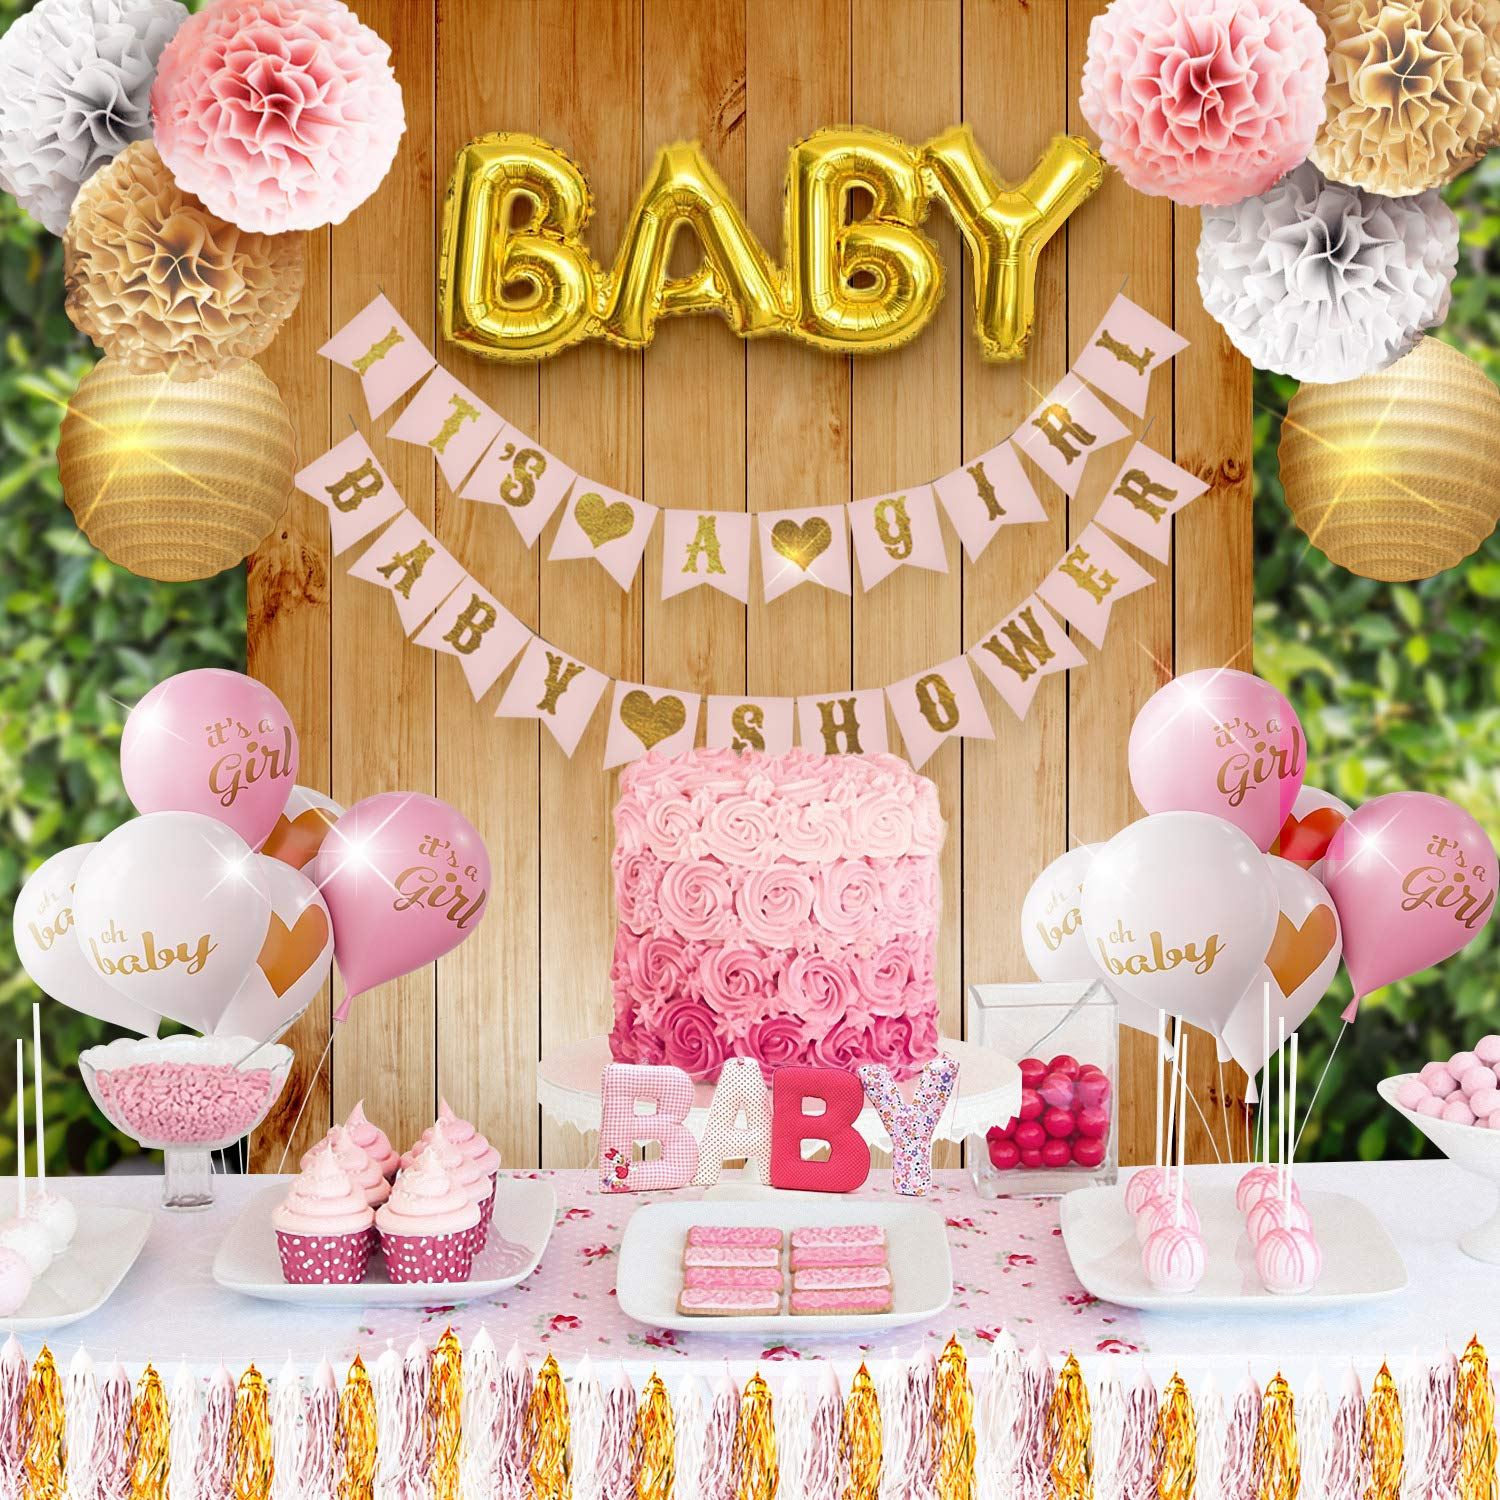 Girl Baby Shower Party Decorations Pink, White and Gold Theme Decor Set  with Banners, Balloons, Poms, Lanterns, Tassels and Sash (7 Pieces)